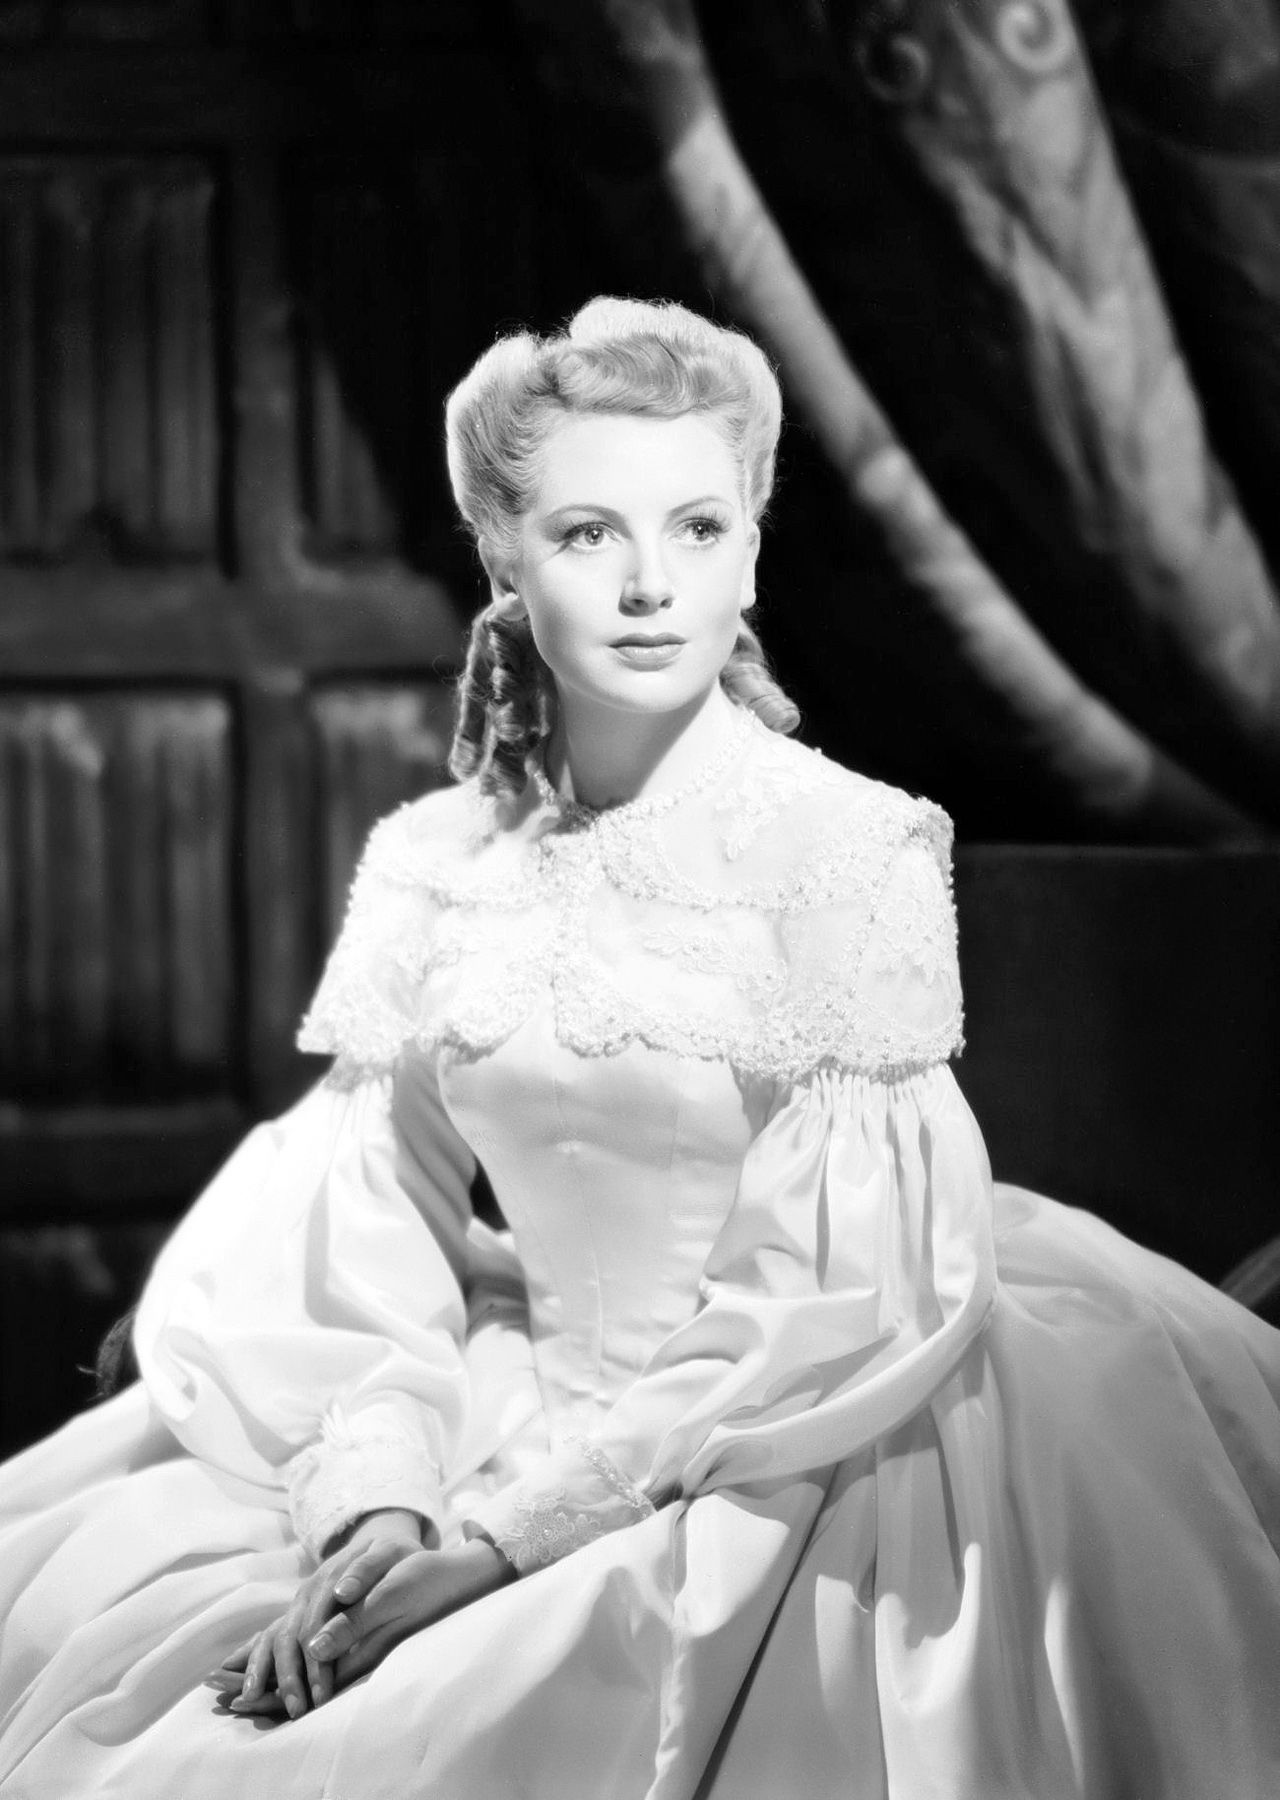 Famous People That Start With D for deborah kerr (courageous mr. penn, the) | cinema -actrices d'hier